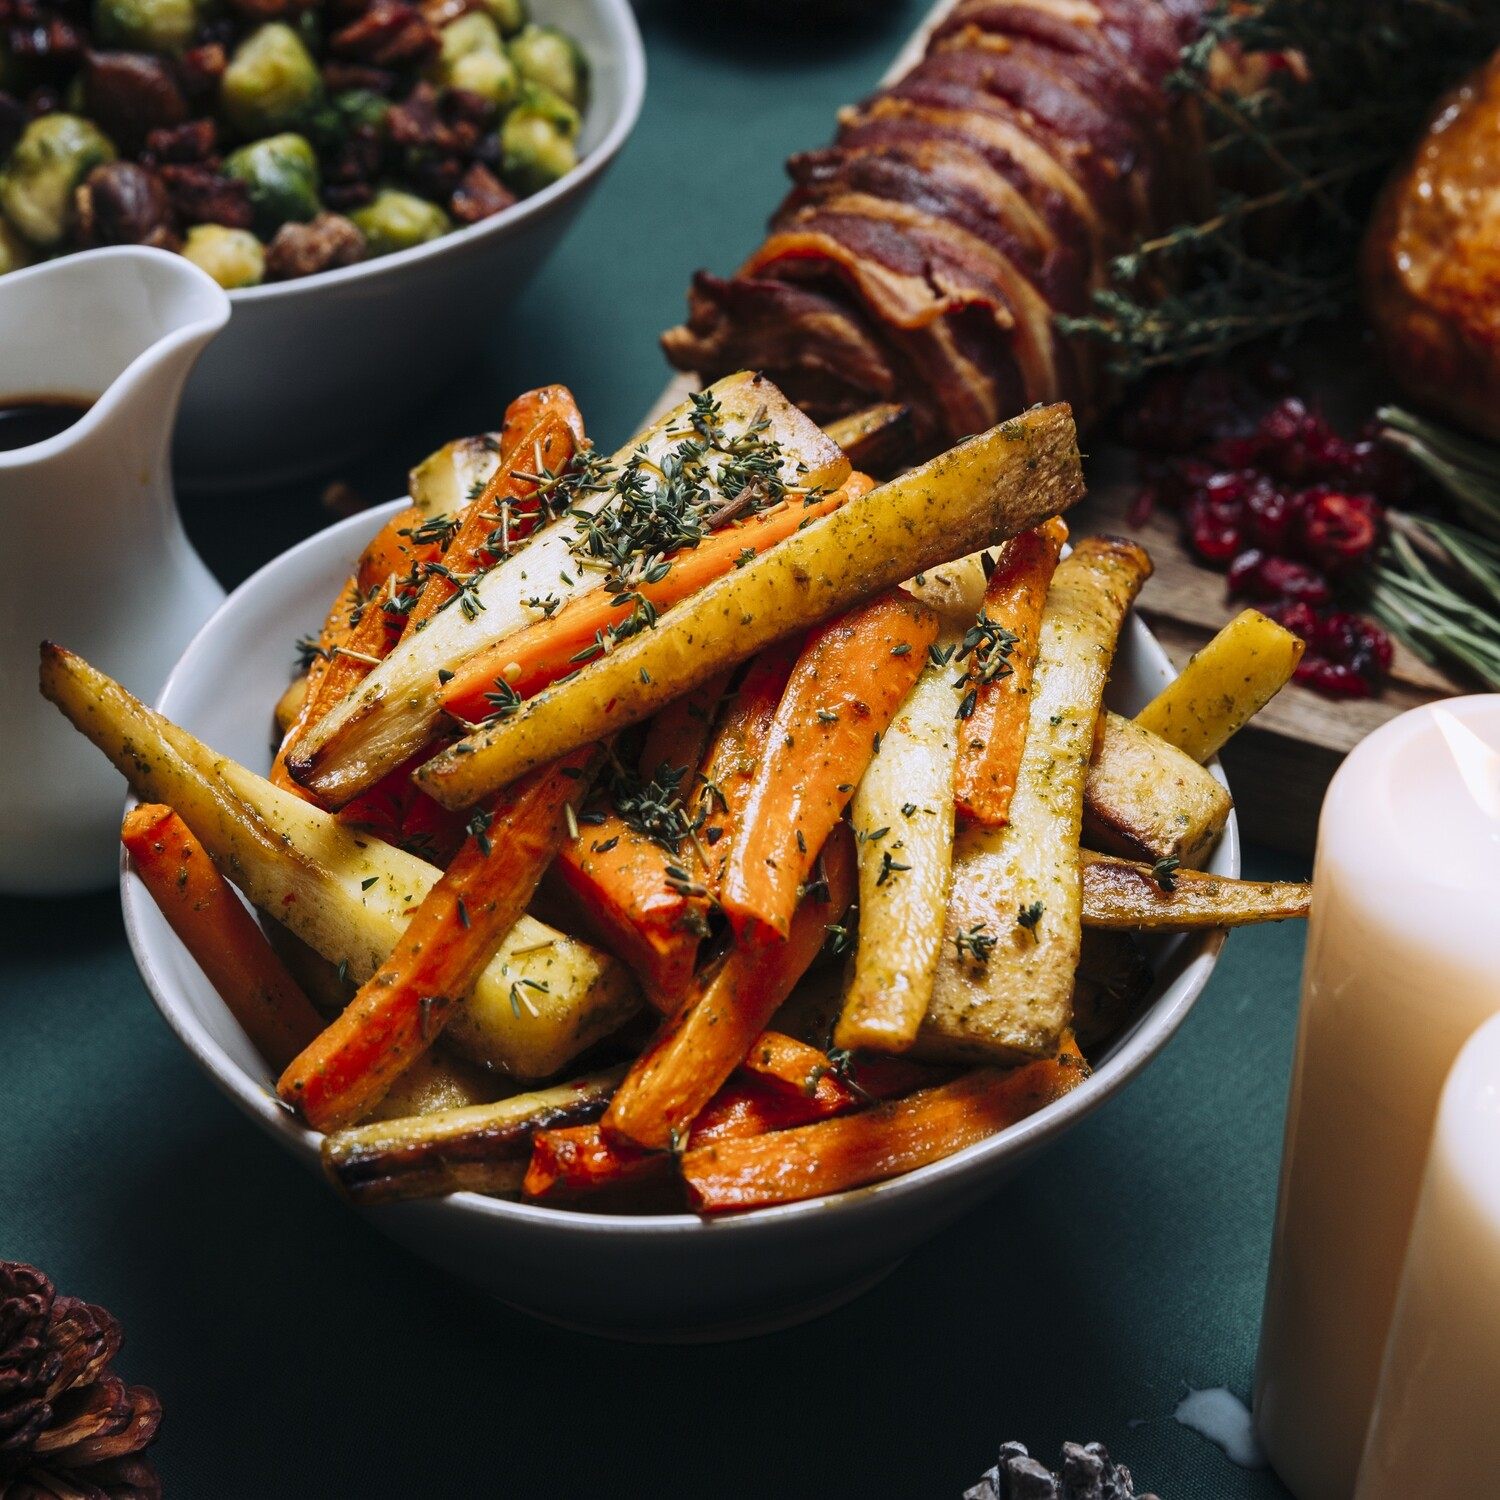 Honey Roasted Parsnips and Carrots with Herby Dressing